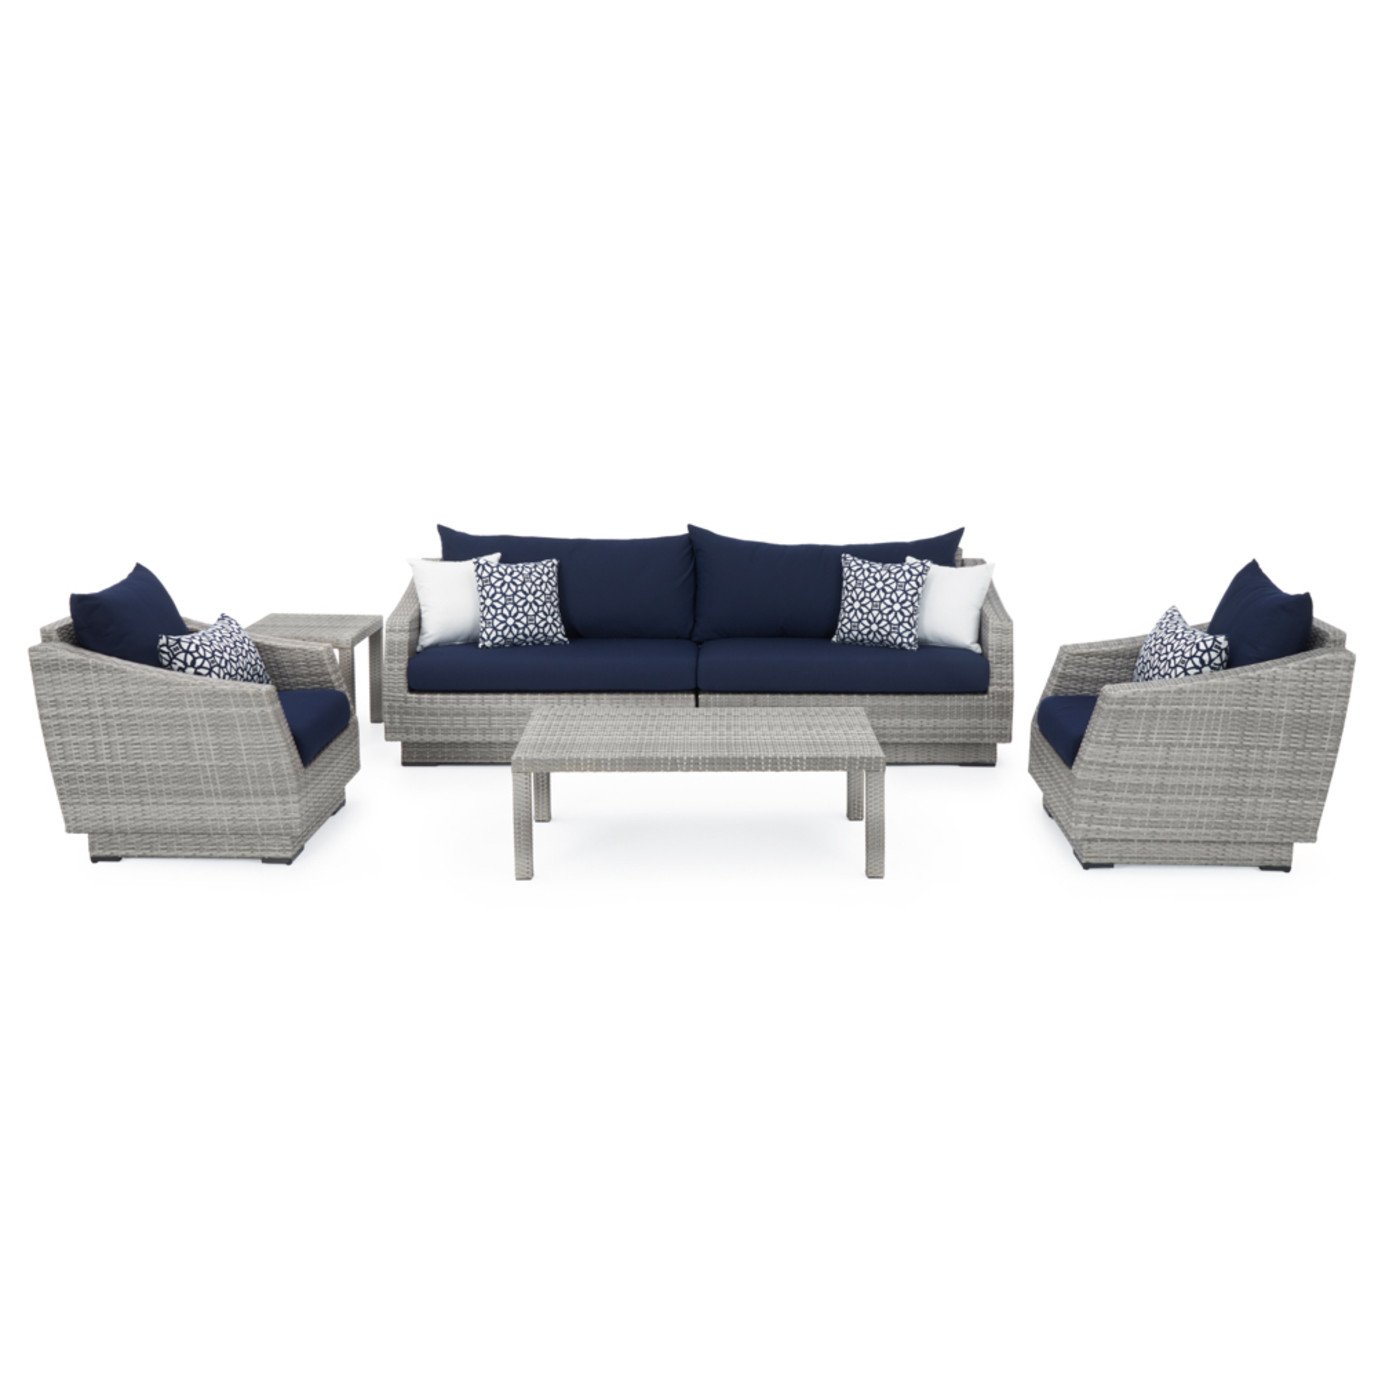 Cannes™ 6 Piece Sofa and Club Chair Set - Navy Blue